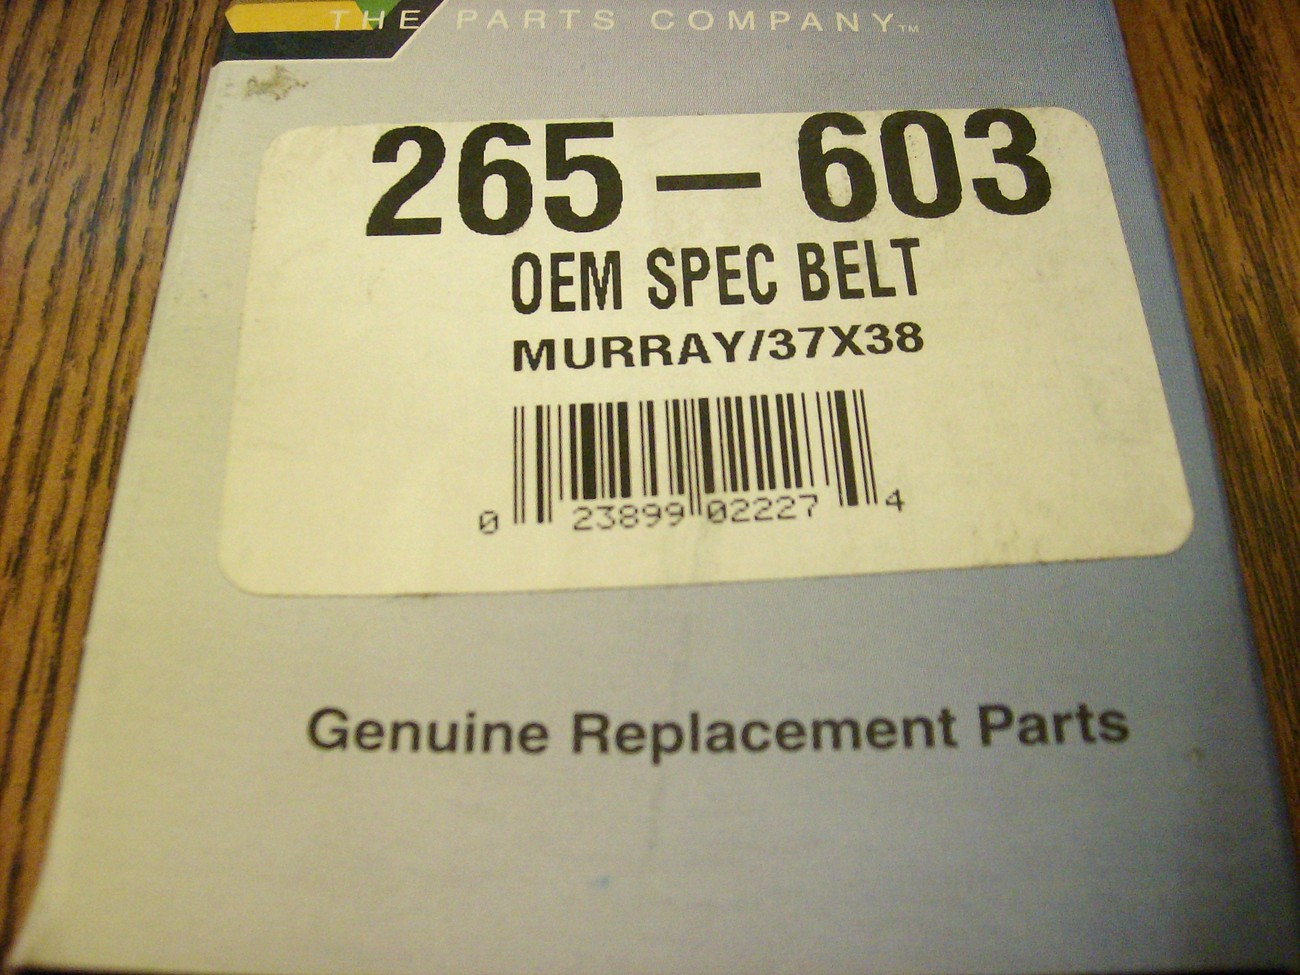 Drive Belt for Murray and Craftsman 037X38MA, 37X38, 37X38MA, rear engine rider